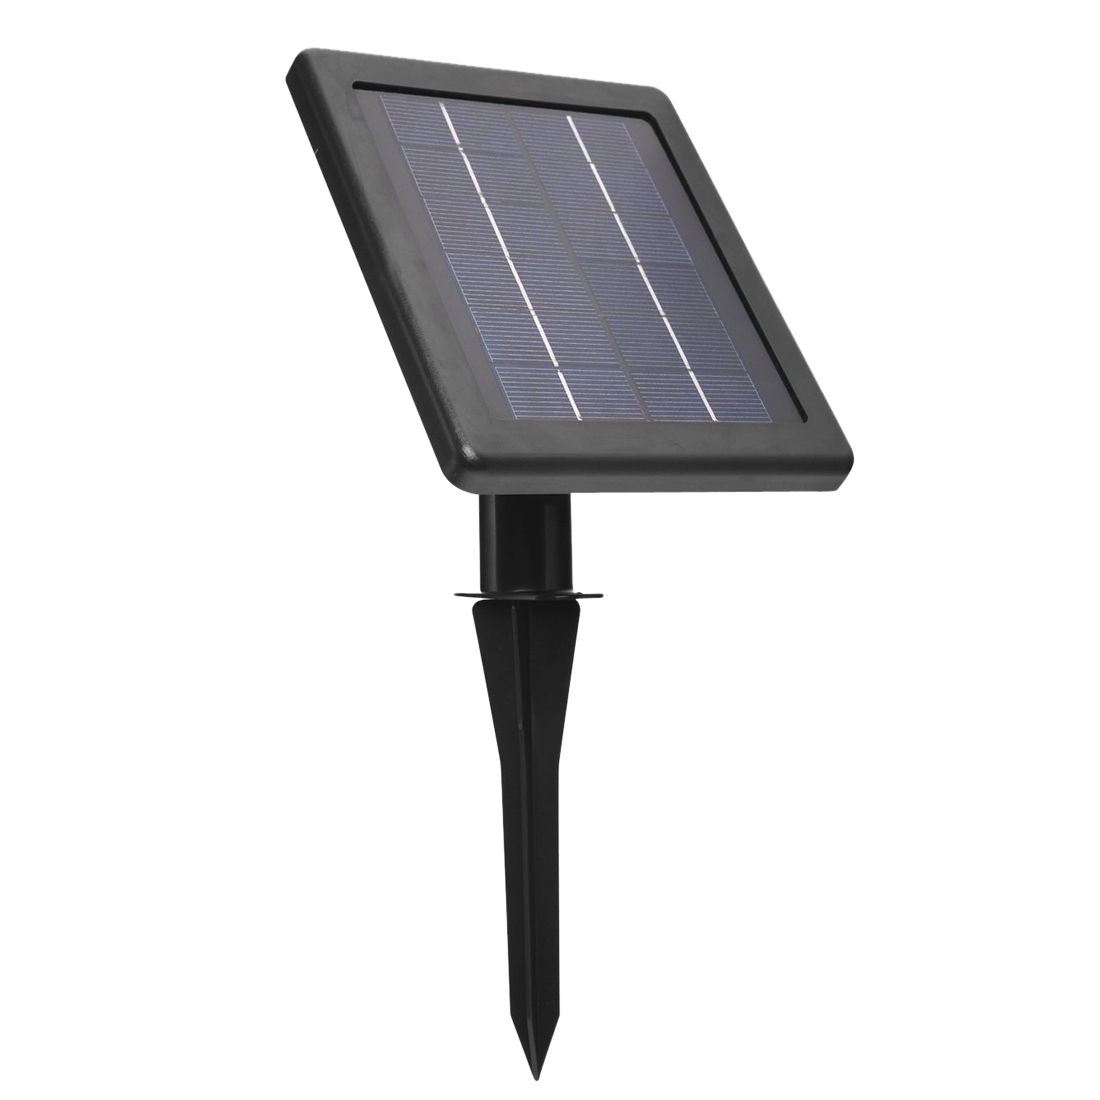 Rechargeable Waterproof Solar Powered 30 LED Spot Light White Lamp with Lithium Battery Inside for Lawn, Garden, Road, Hotel 4pcs 100% original brand new for samsung inr18650 30q battery 3000mah lithium battery inr18650 powered rechargeable battery